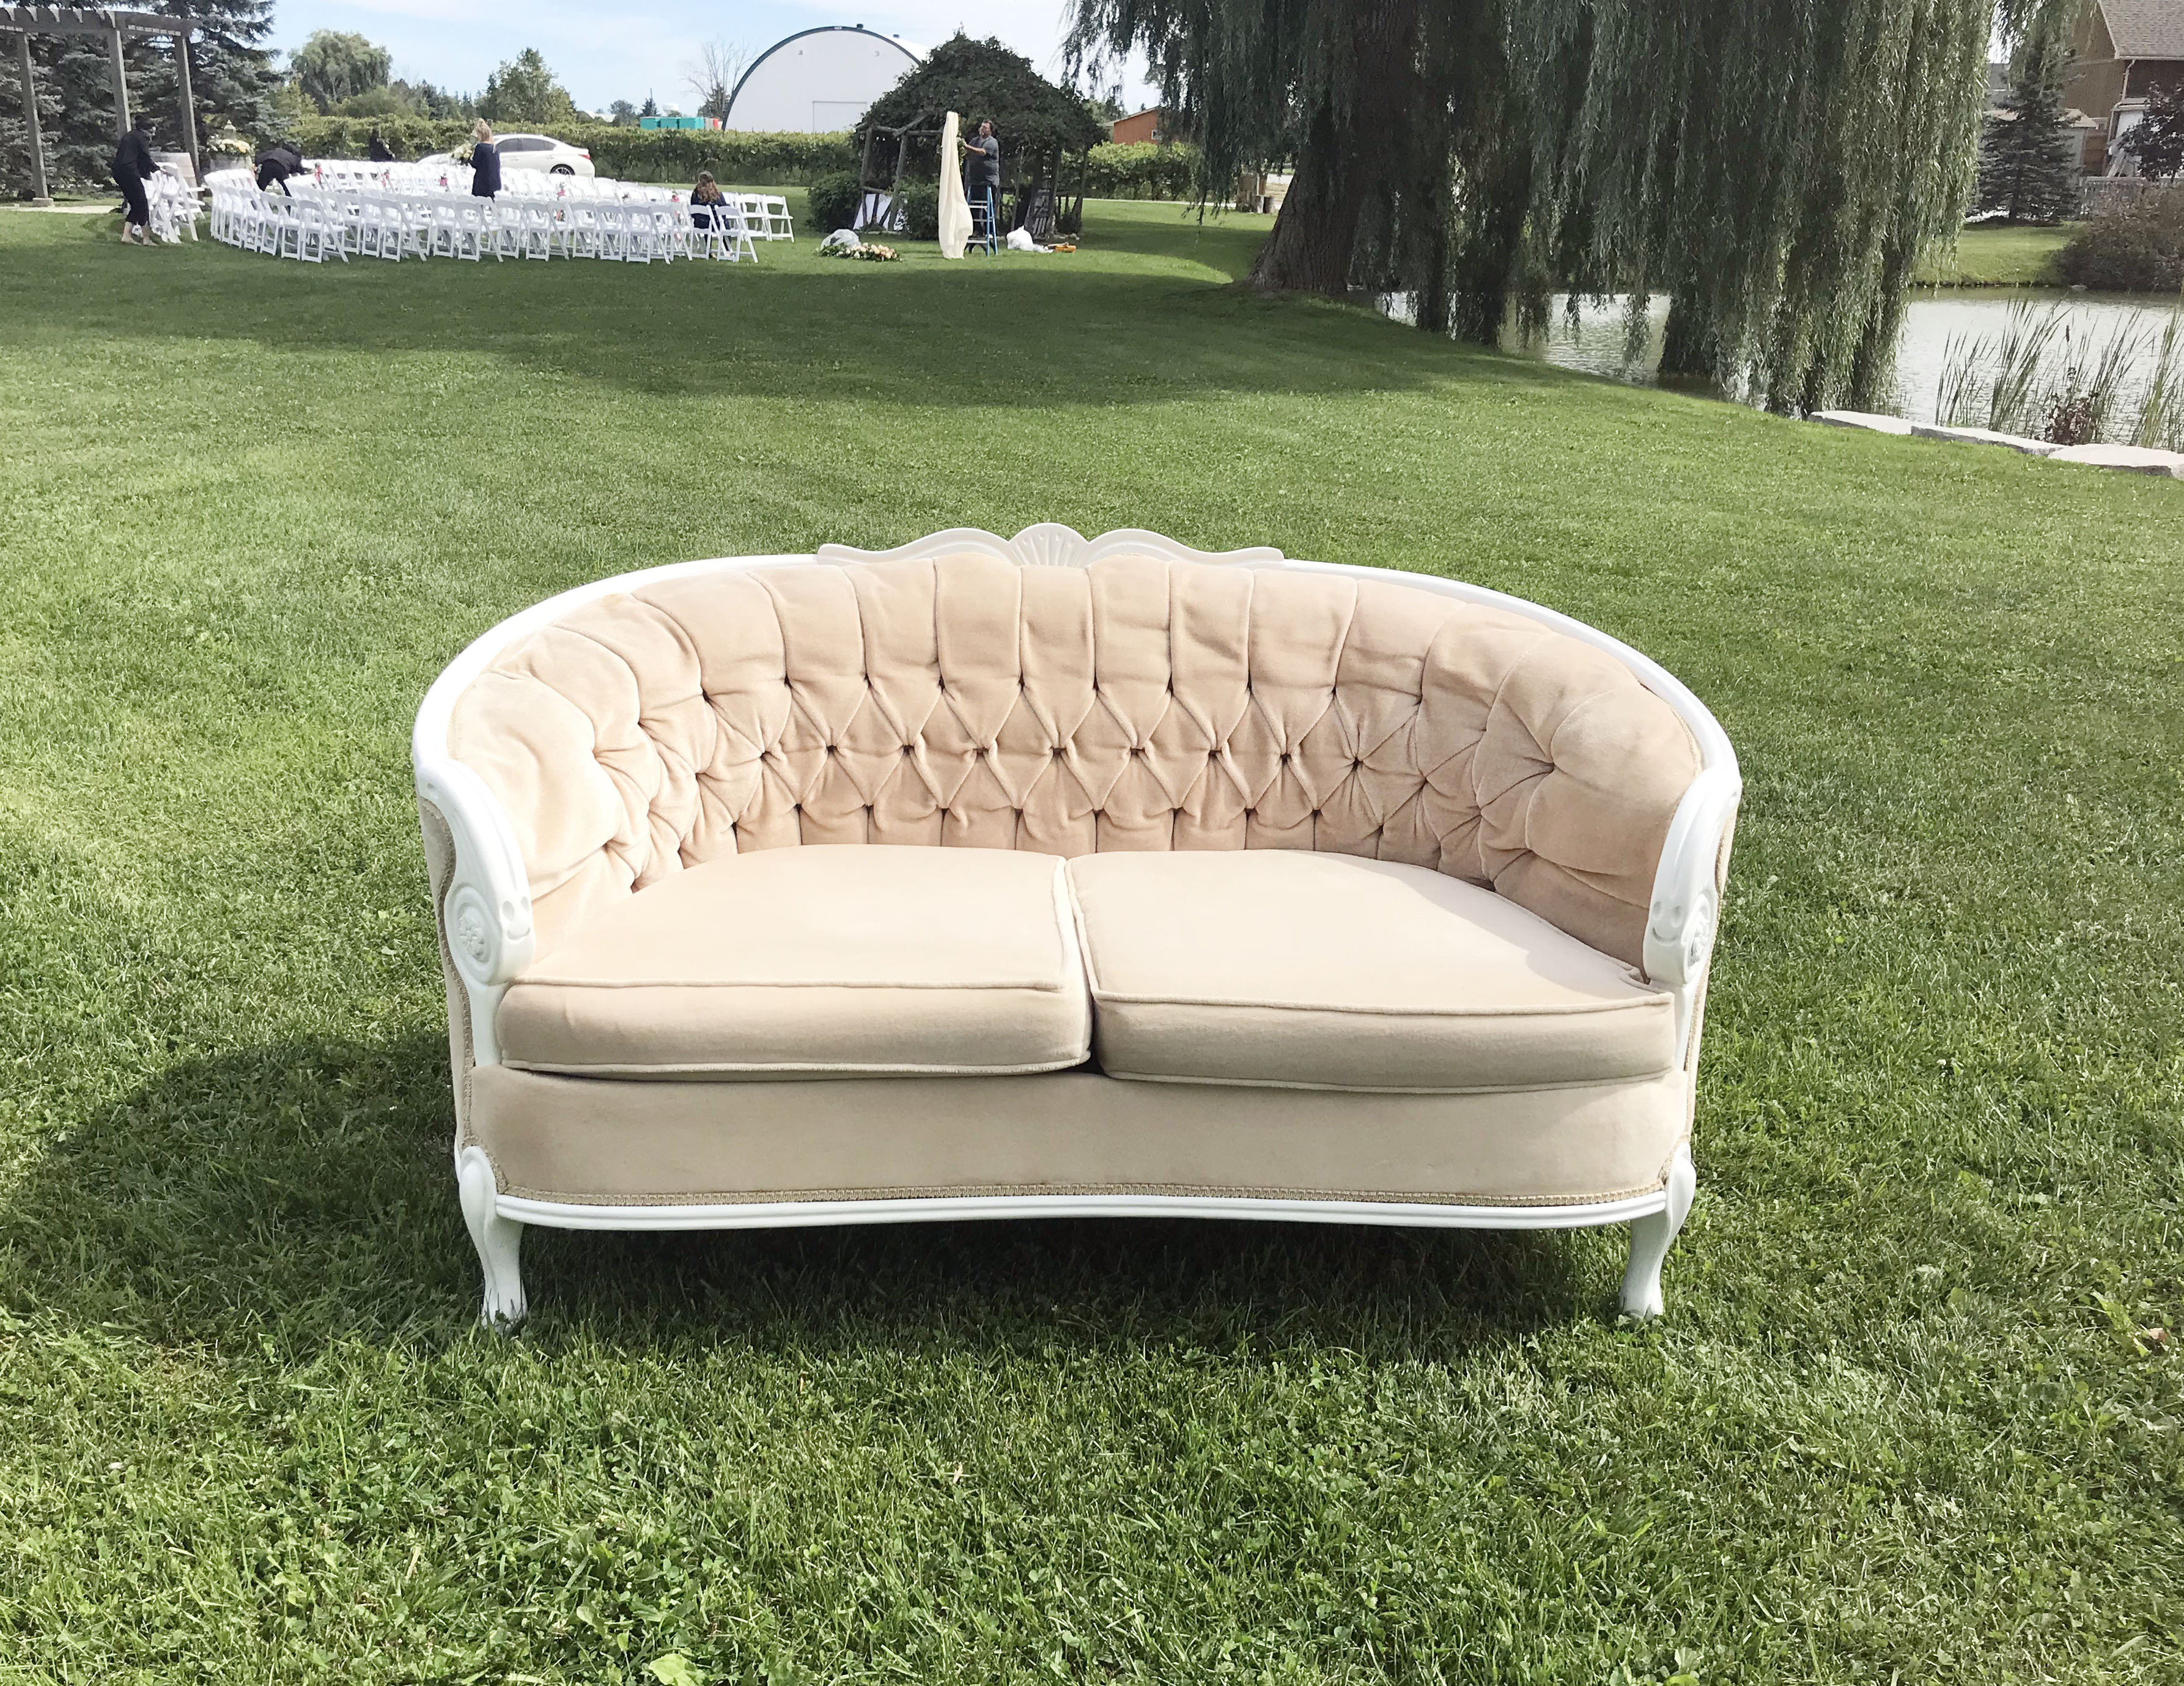 Remarkable Nancy Peach Ornate Sofa Love Seat Seating Gmtry Best Dining Table And Chair Ideas Images Gmtryco